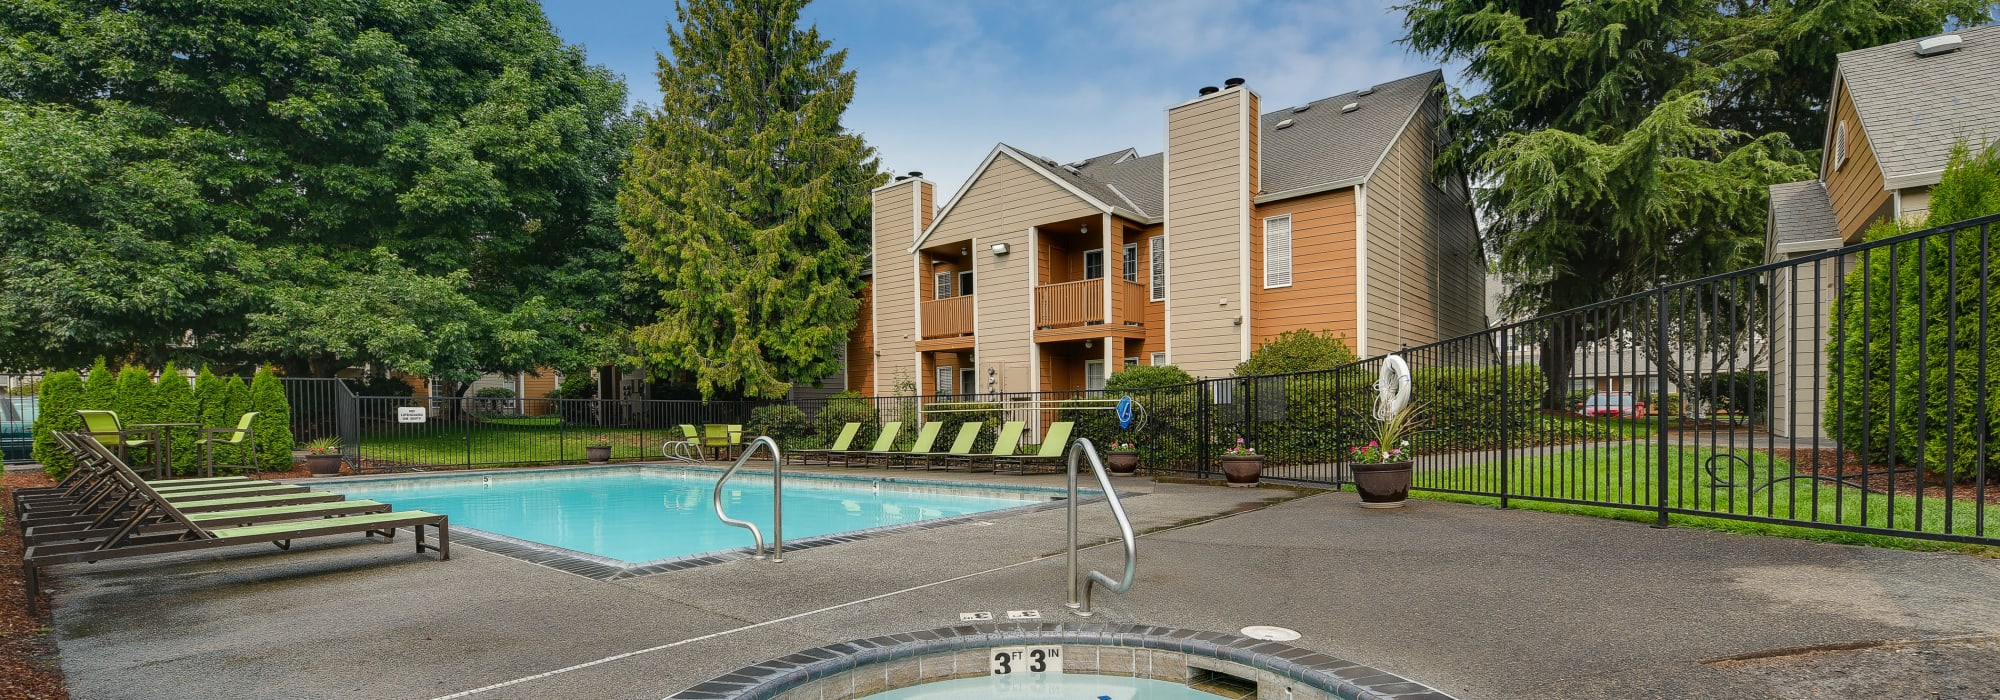 Contact us at Carriage House Apartments in Vancouver, Washington